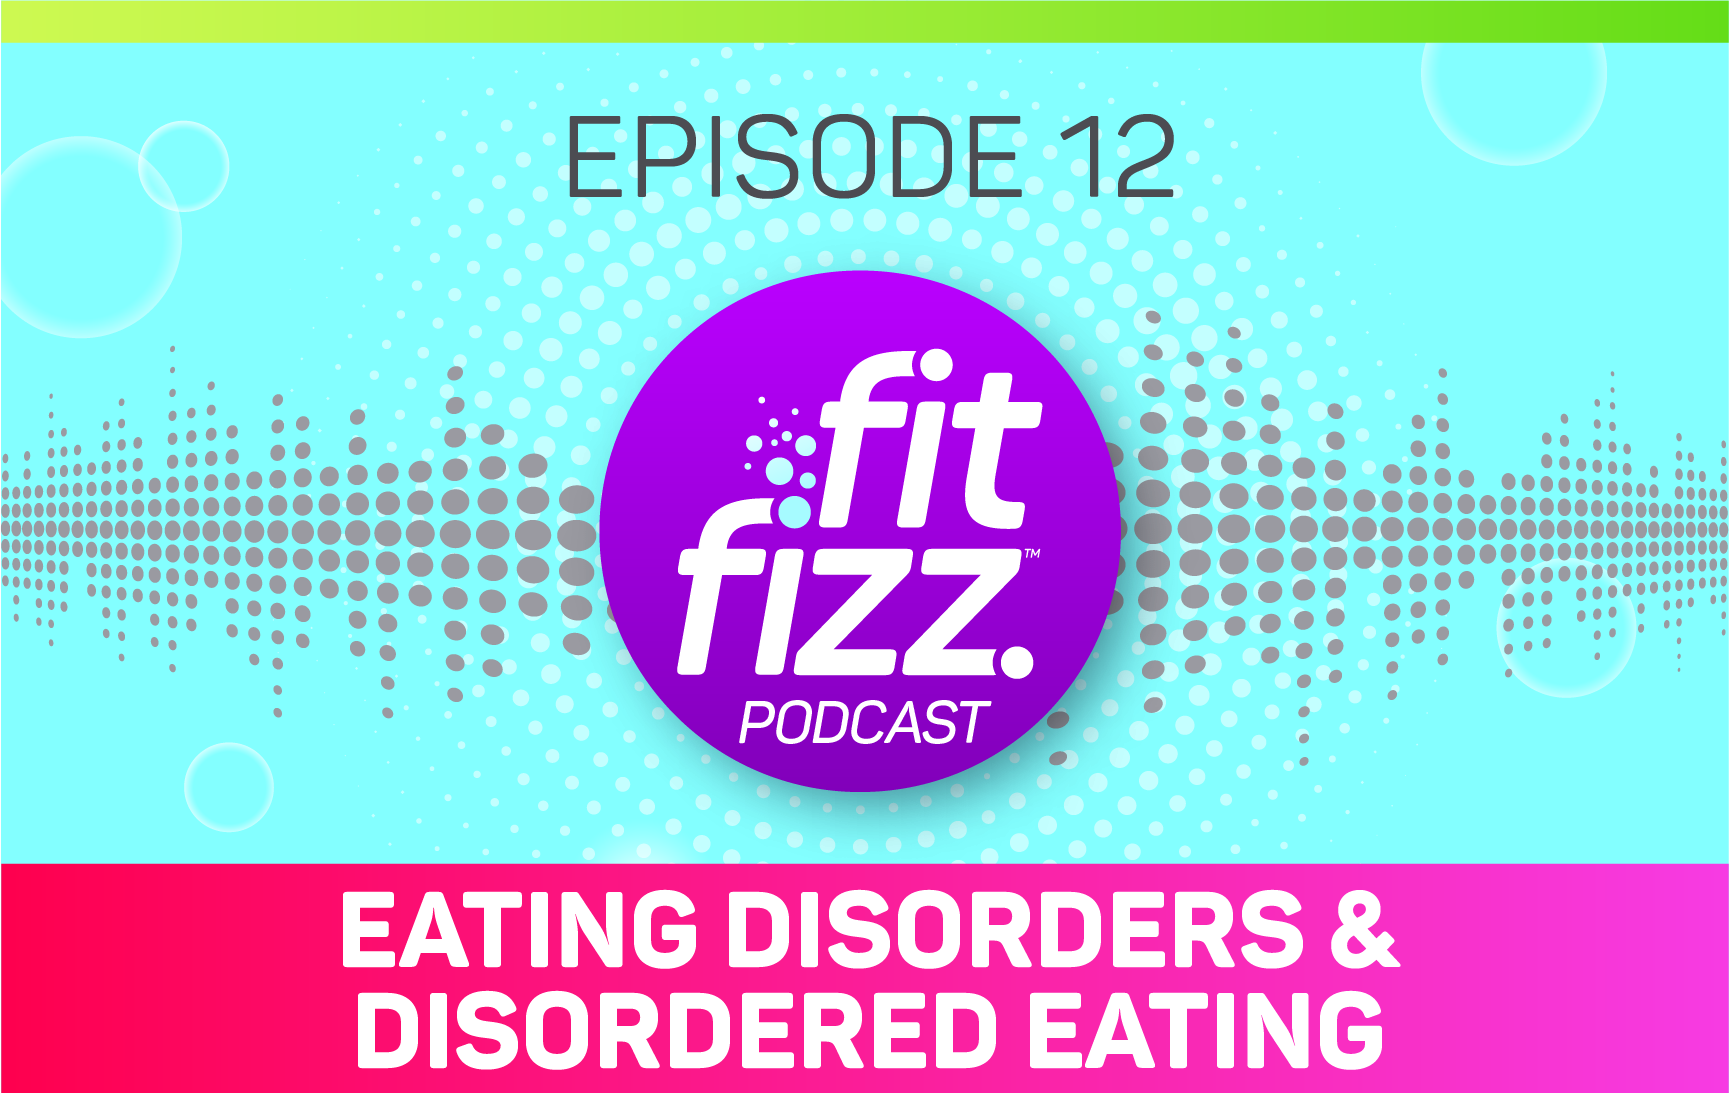 Episode 12: Eating Disorders & Disordered Eating